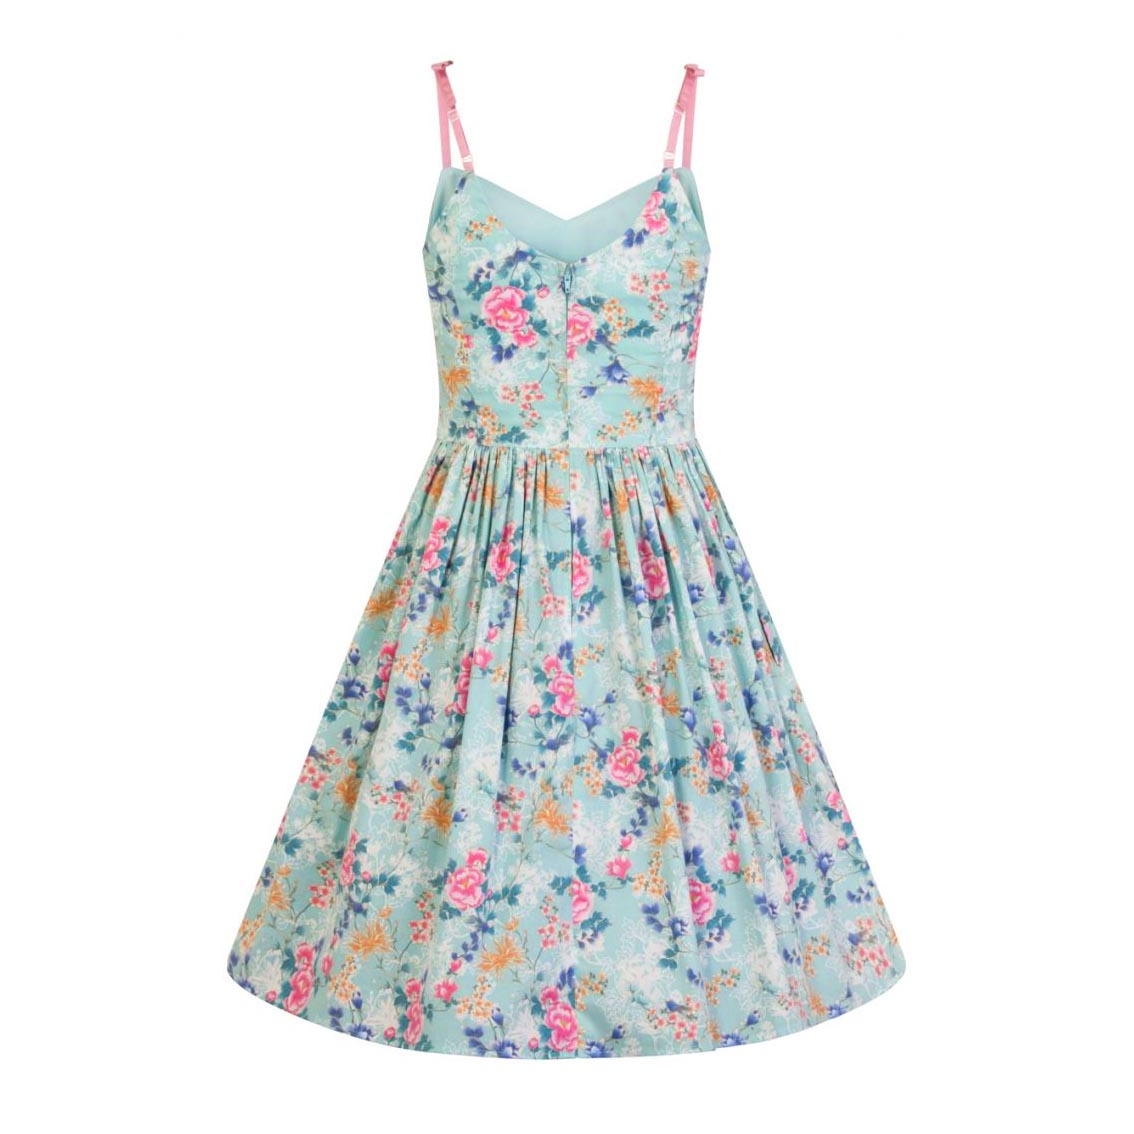 Hell-Bunny-50s-Mid-Length-Dress-Vintage-Blue-Pink-SAKURA-Flowers-Roses-All-Sizes thumbnail 10